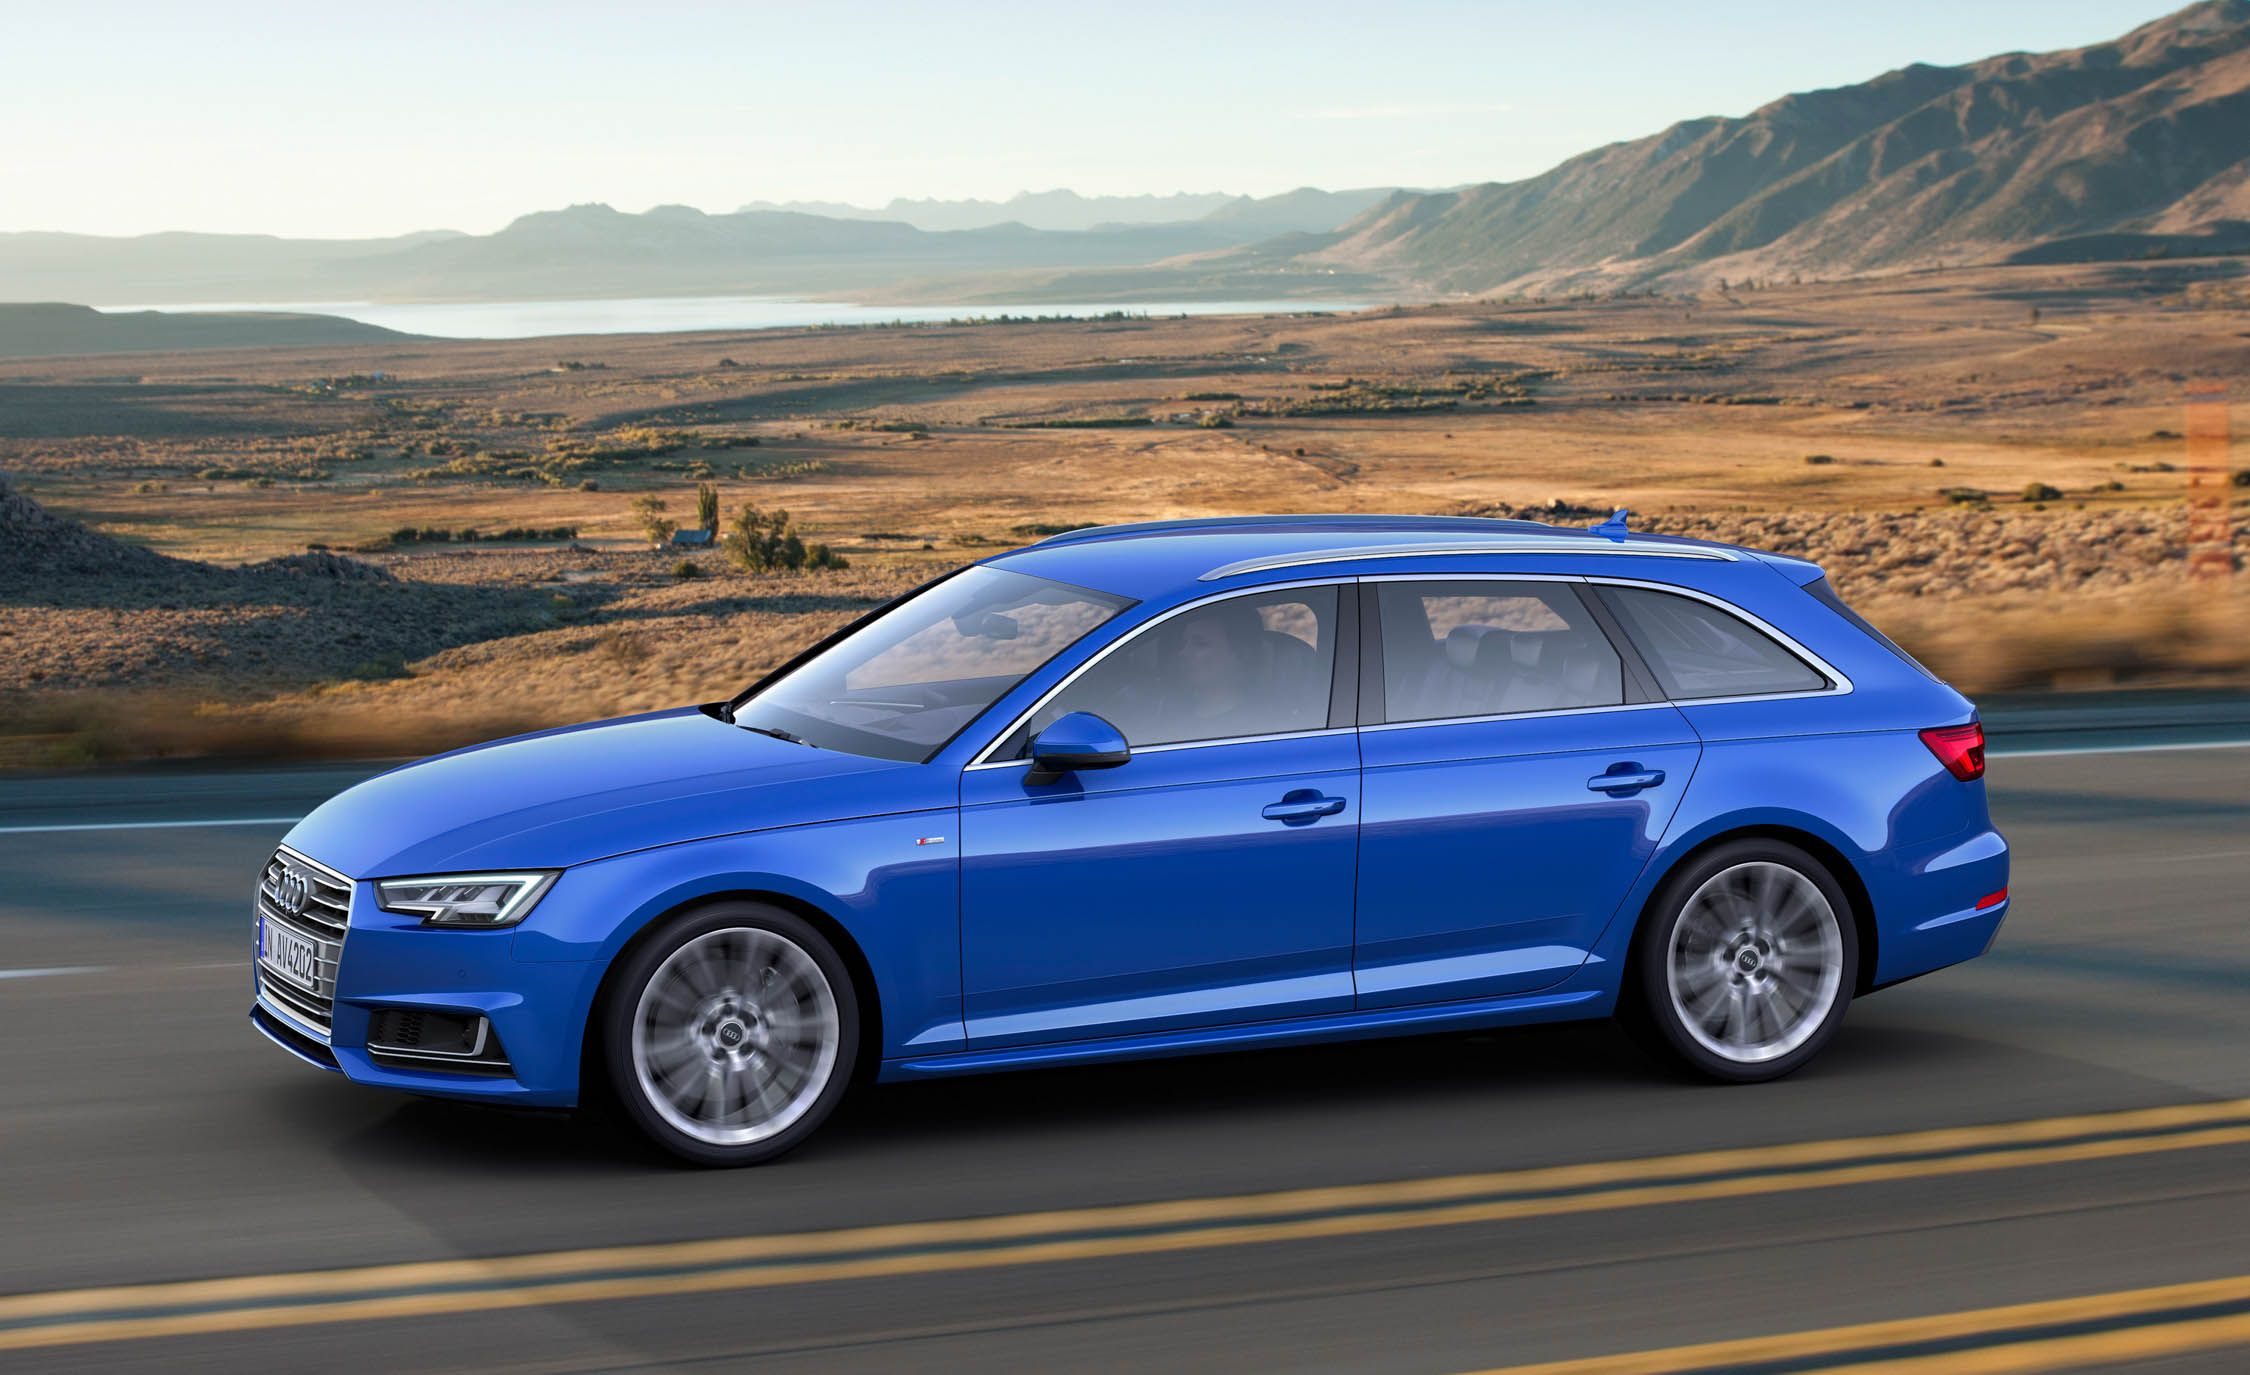 2017 audi a4 pictures photo gallery car and driver